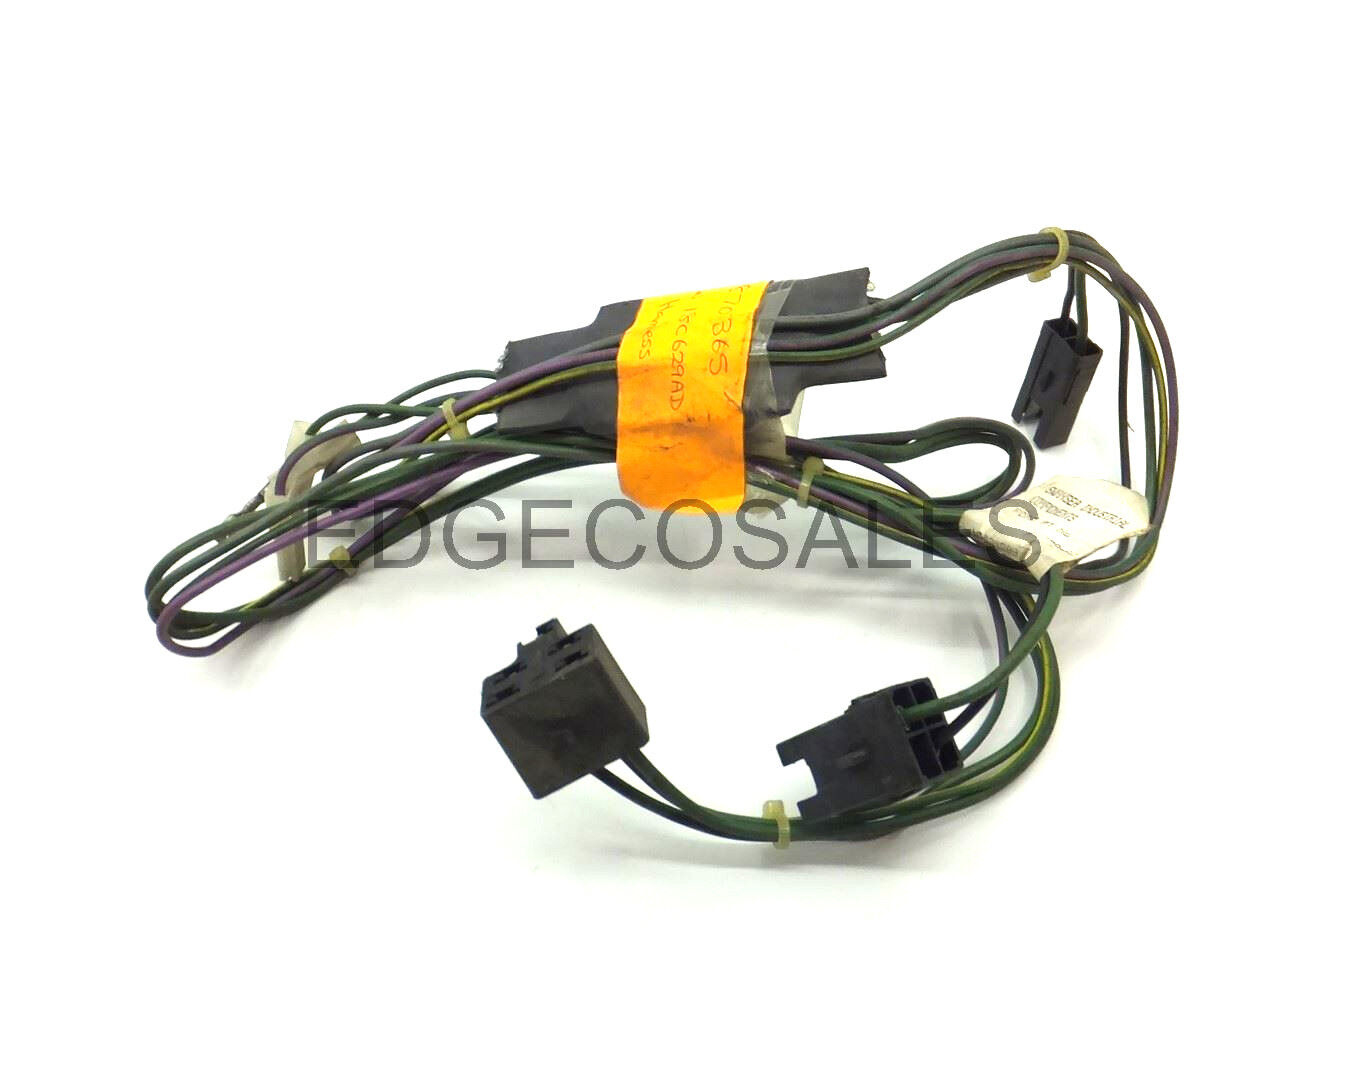 Tractor Parts Heavy Equipment Accs Business Industrial New Holland Wiring Harness Tm Series Cab Heater Loom 81870365